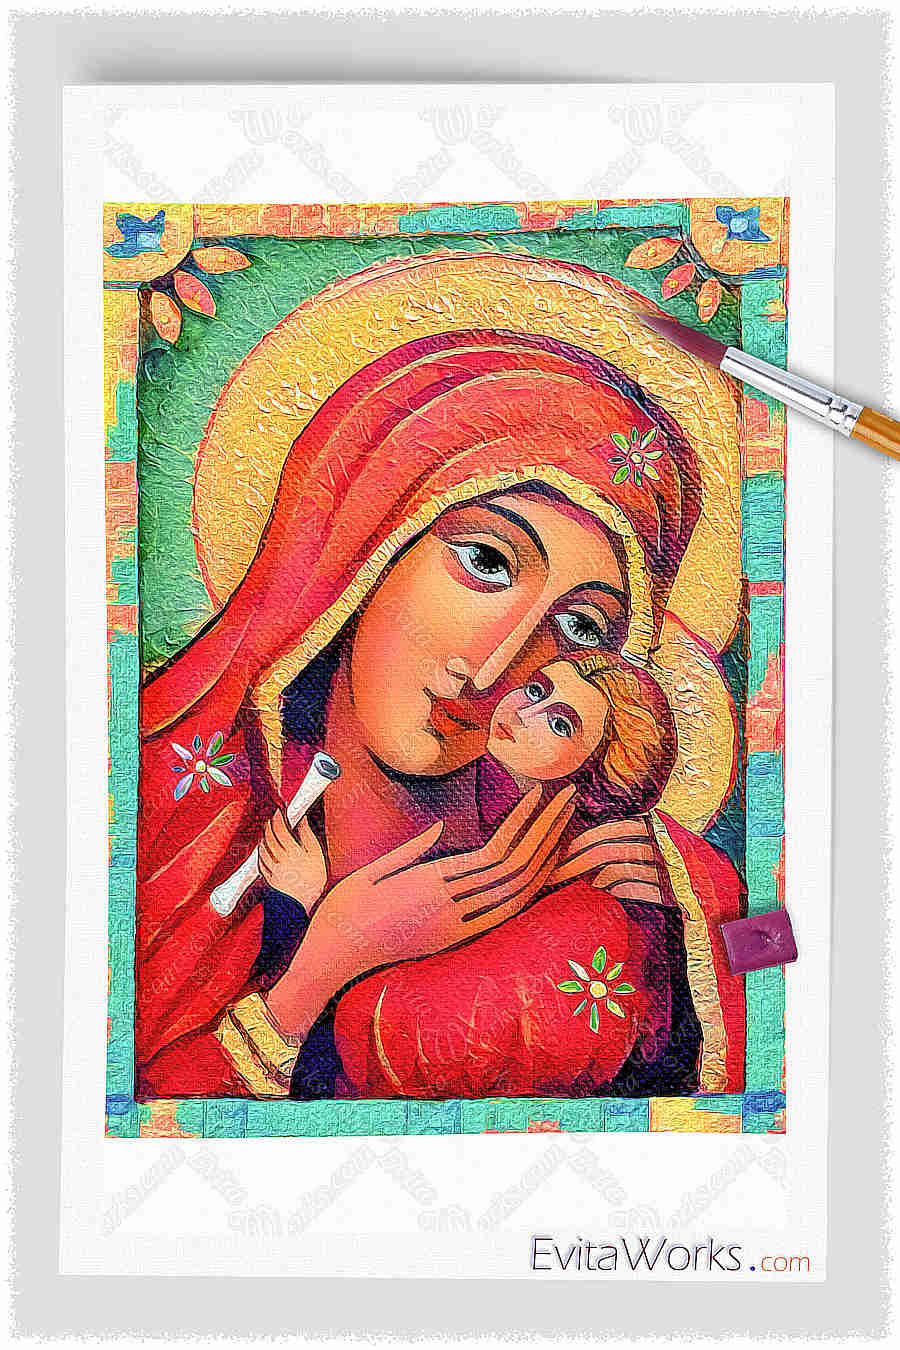 Madonna And Child ~ EvitaWorks